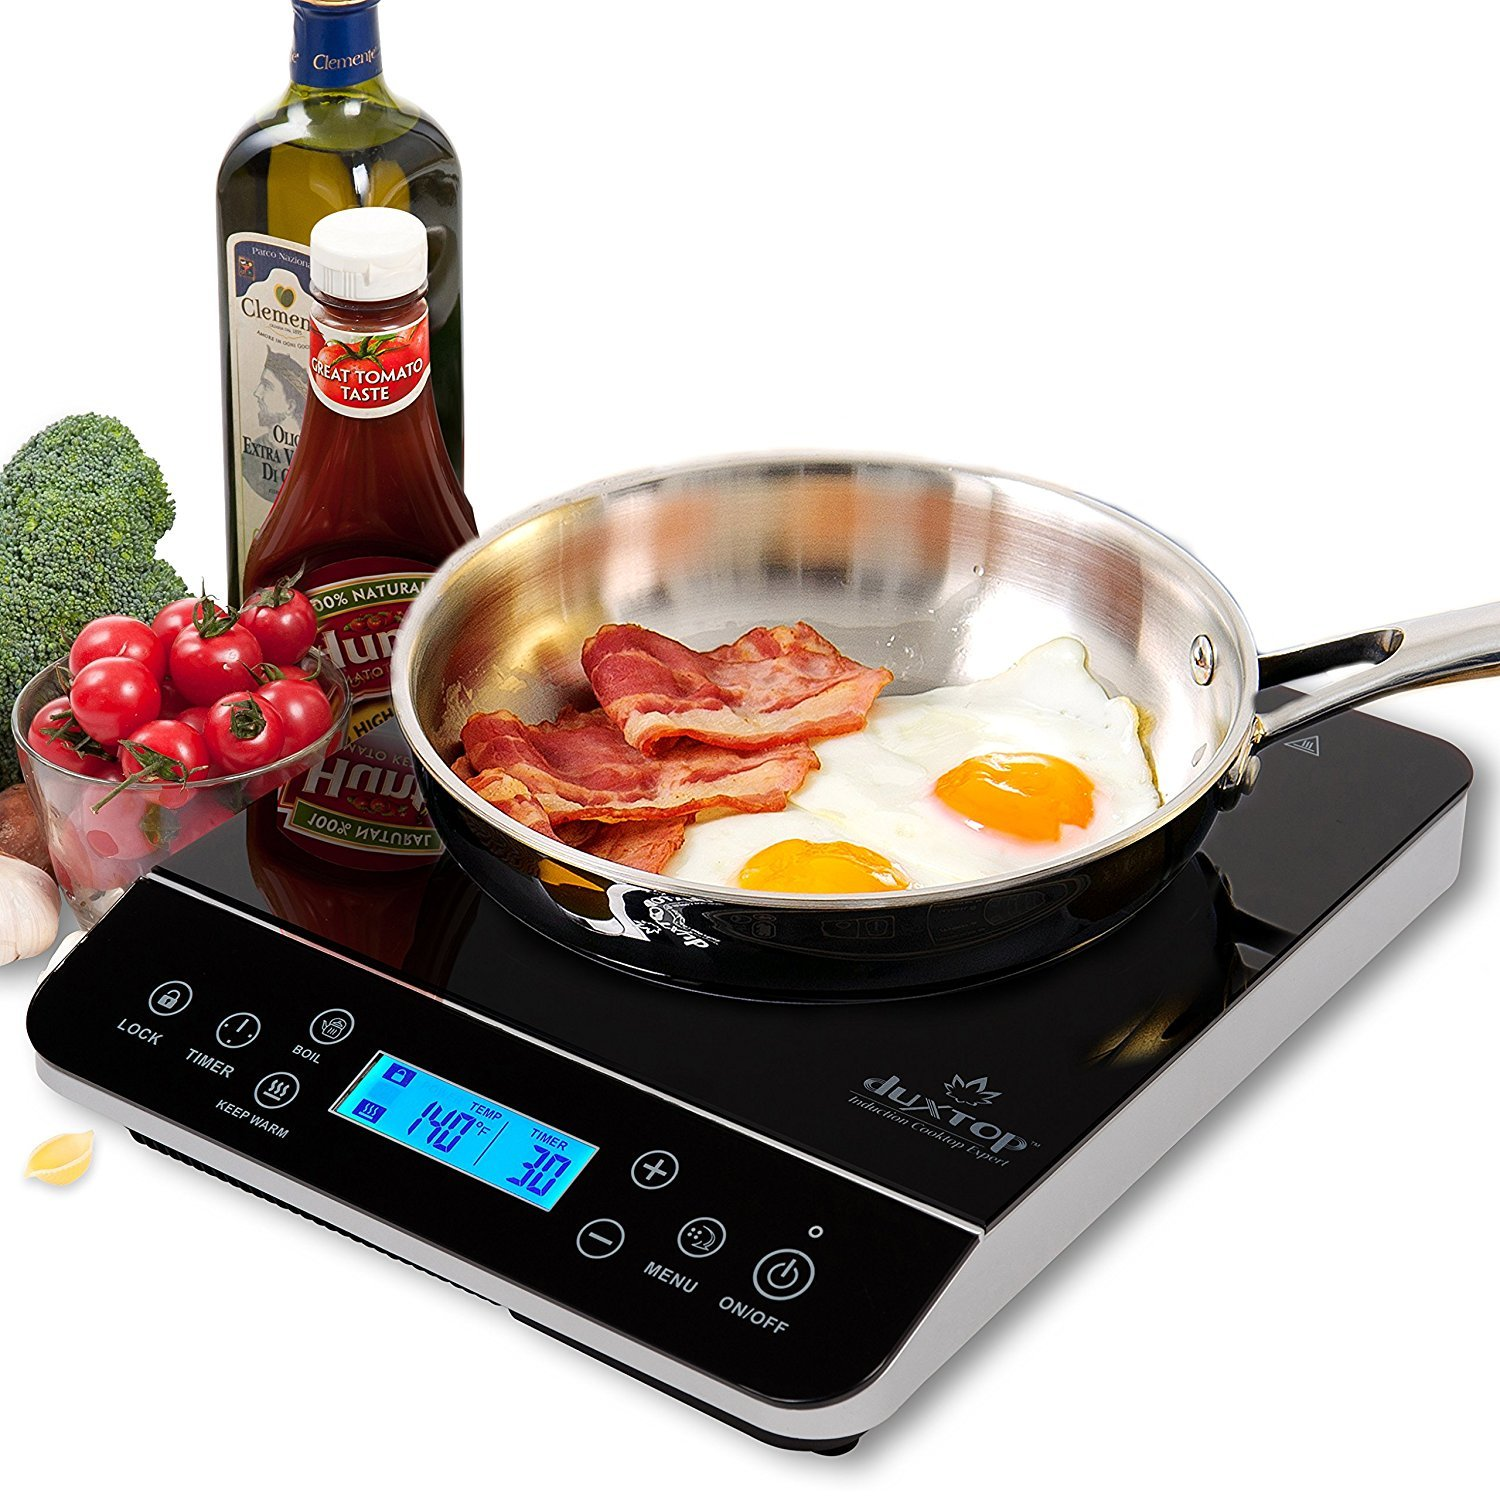 reviews burner best choose the watt how duxtop induction portable watch to cooktop countertop countertops